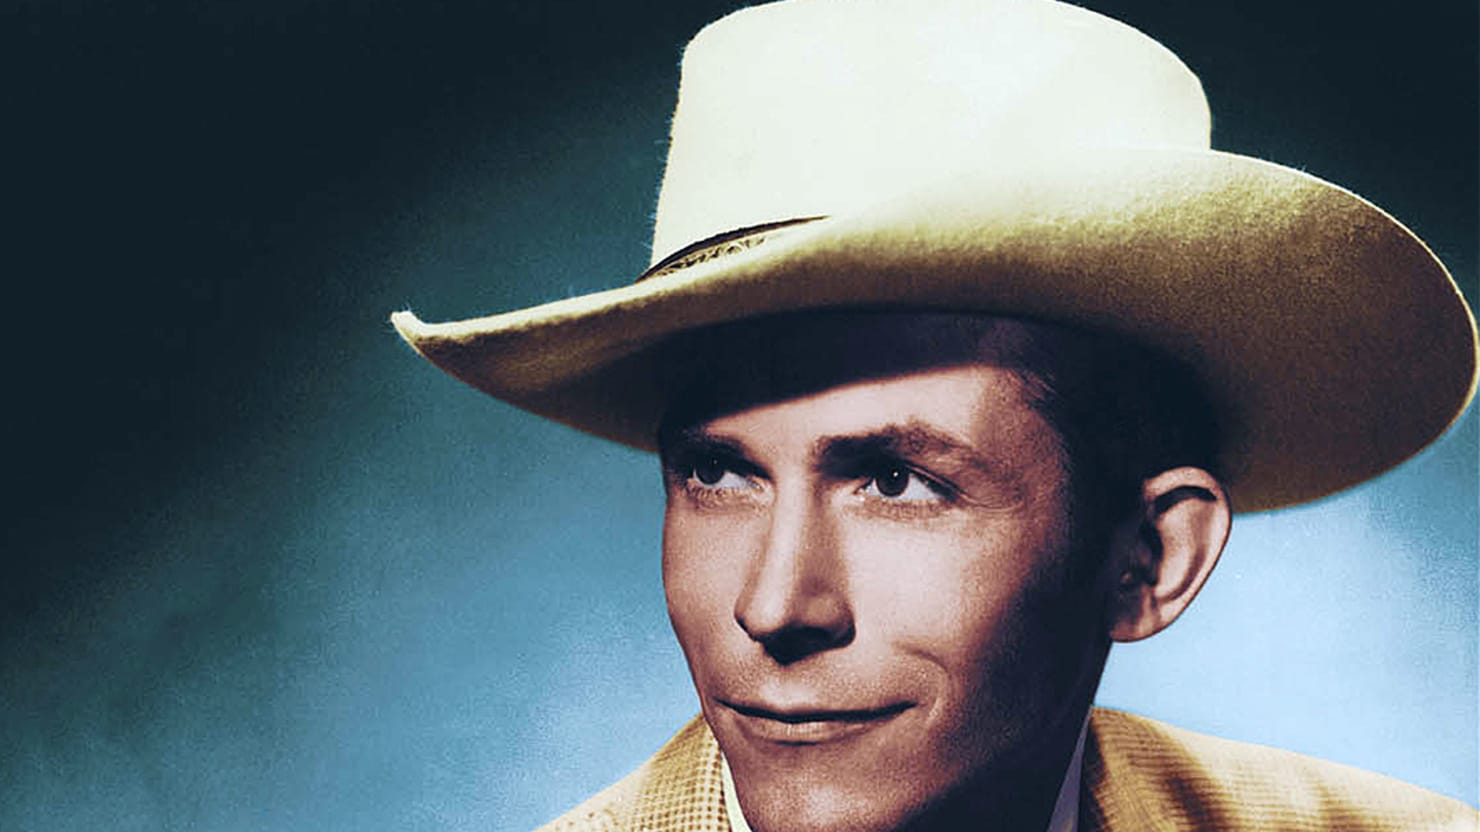 Hank Williams And The Curse Of the 'Live Fast, Die Young